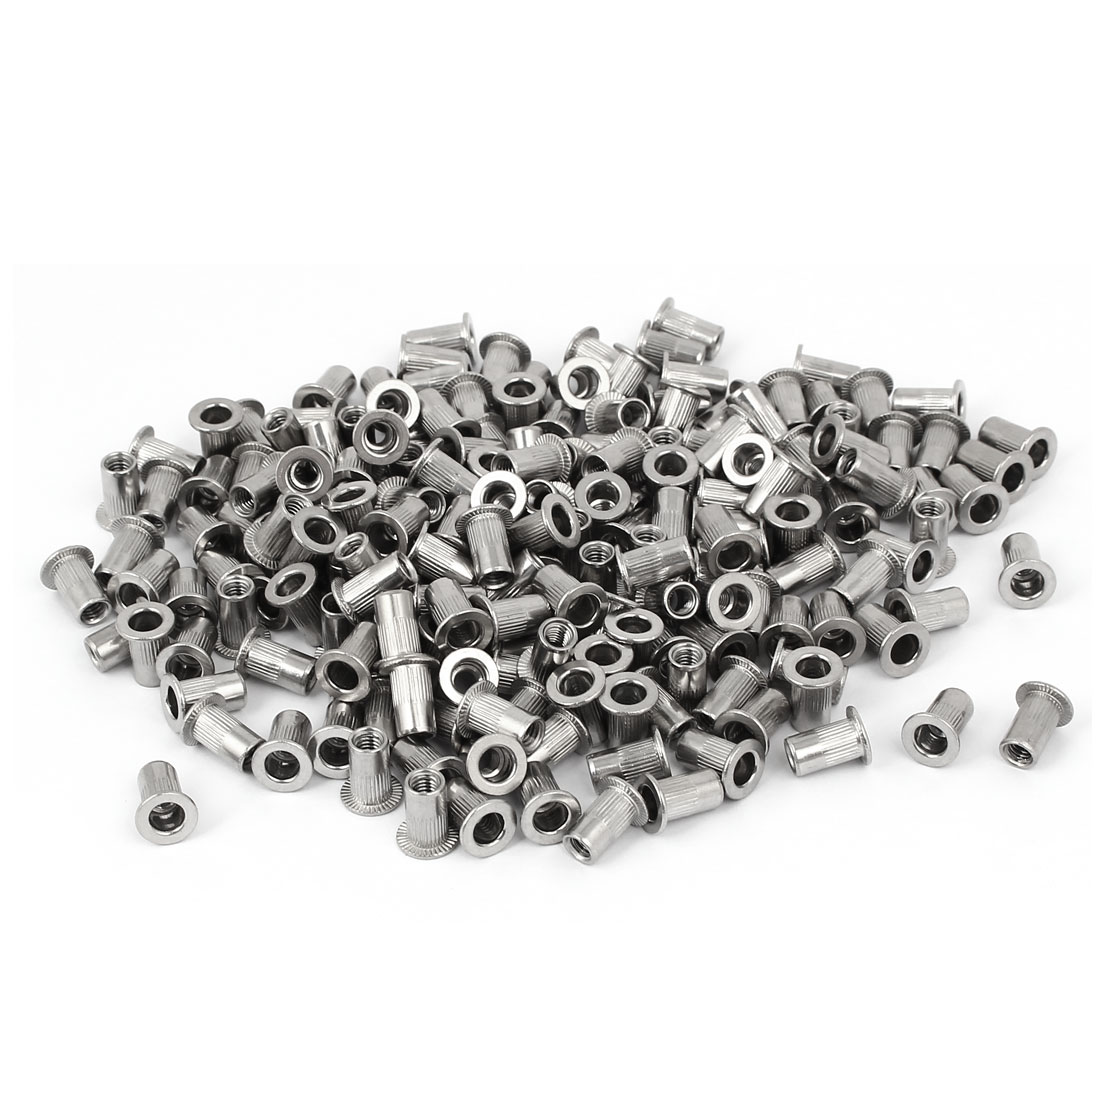 M4 x 11mm 304 Stainless Steel Knurled Flat Head Rivet Nut Insert Nutsert 200PCS